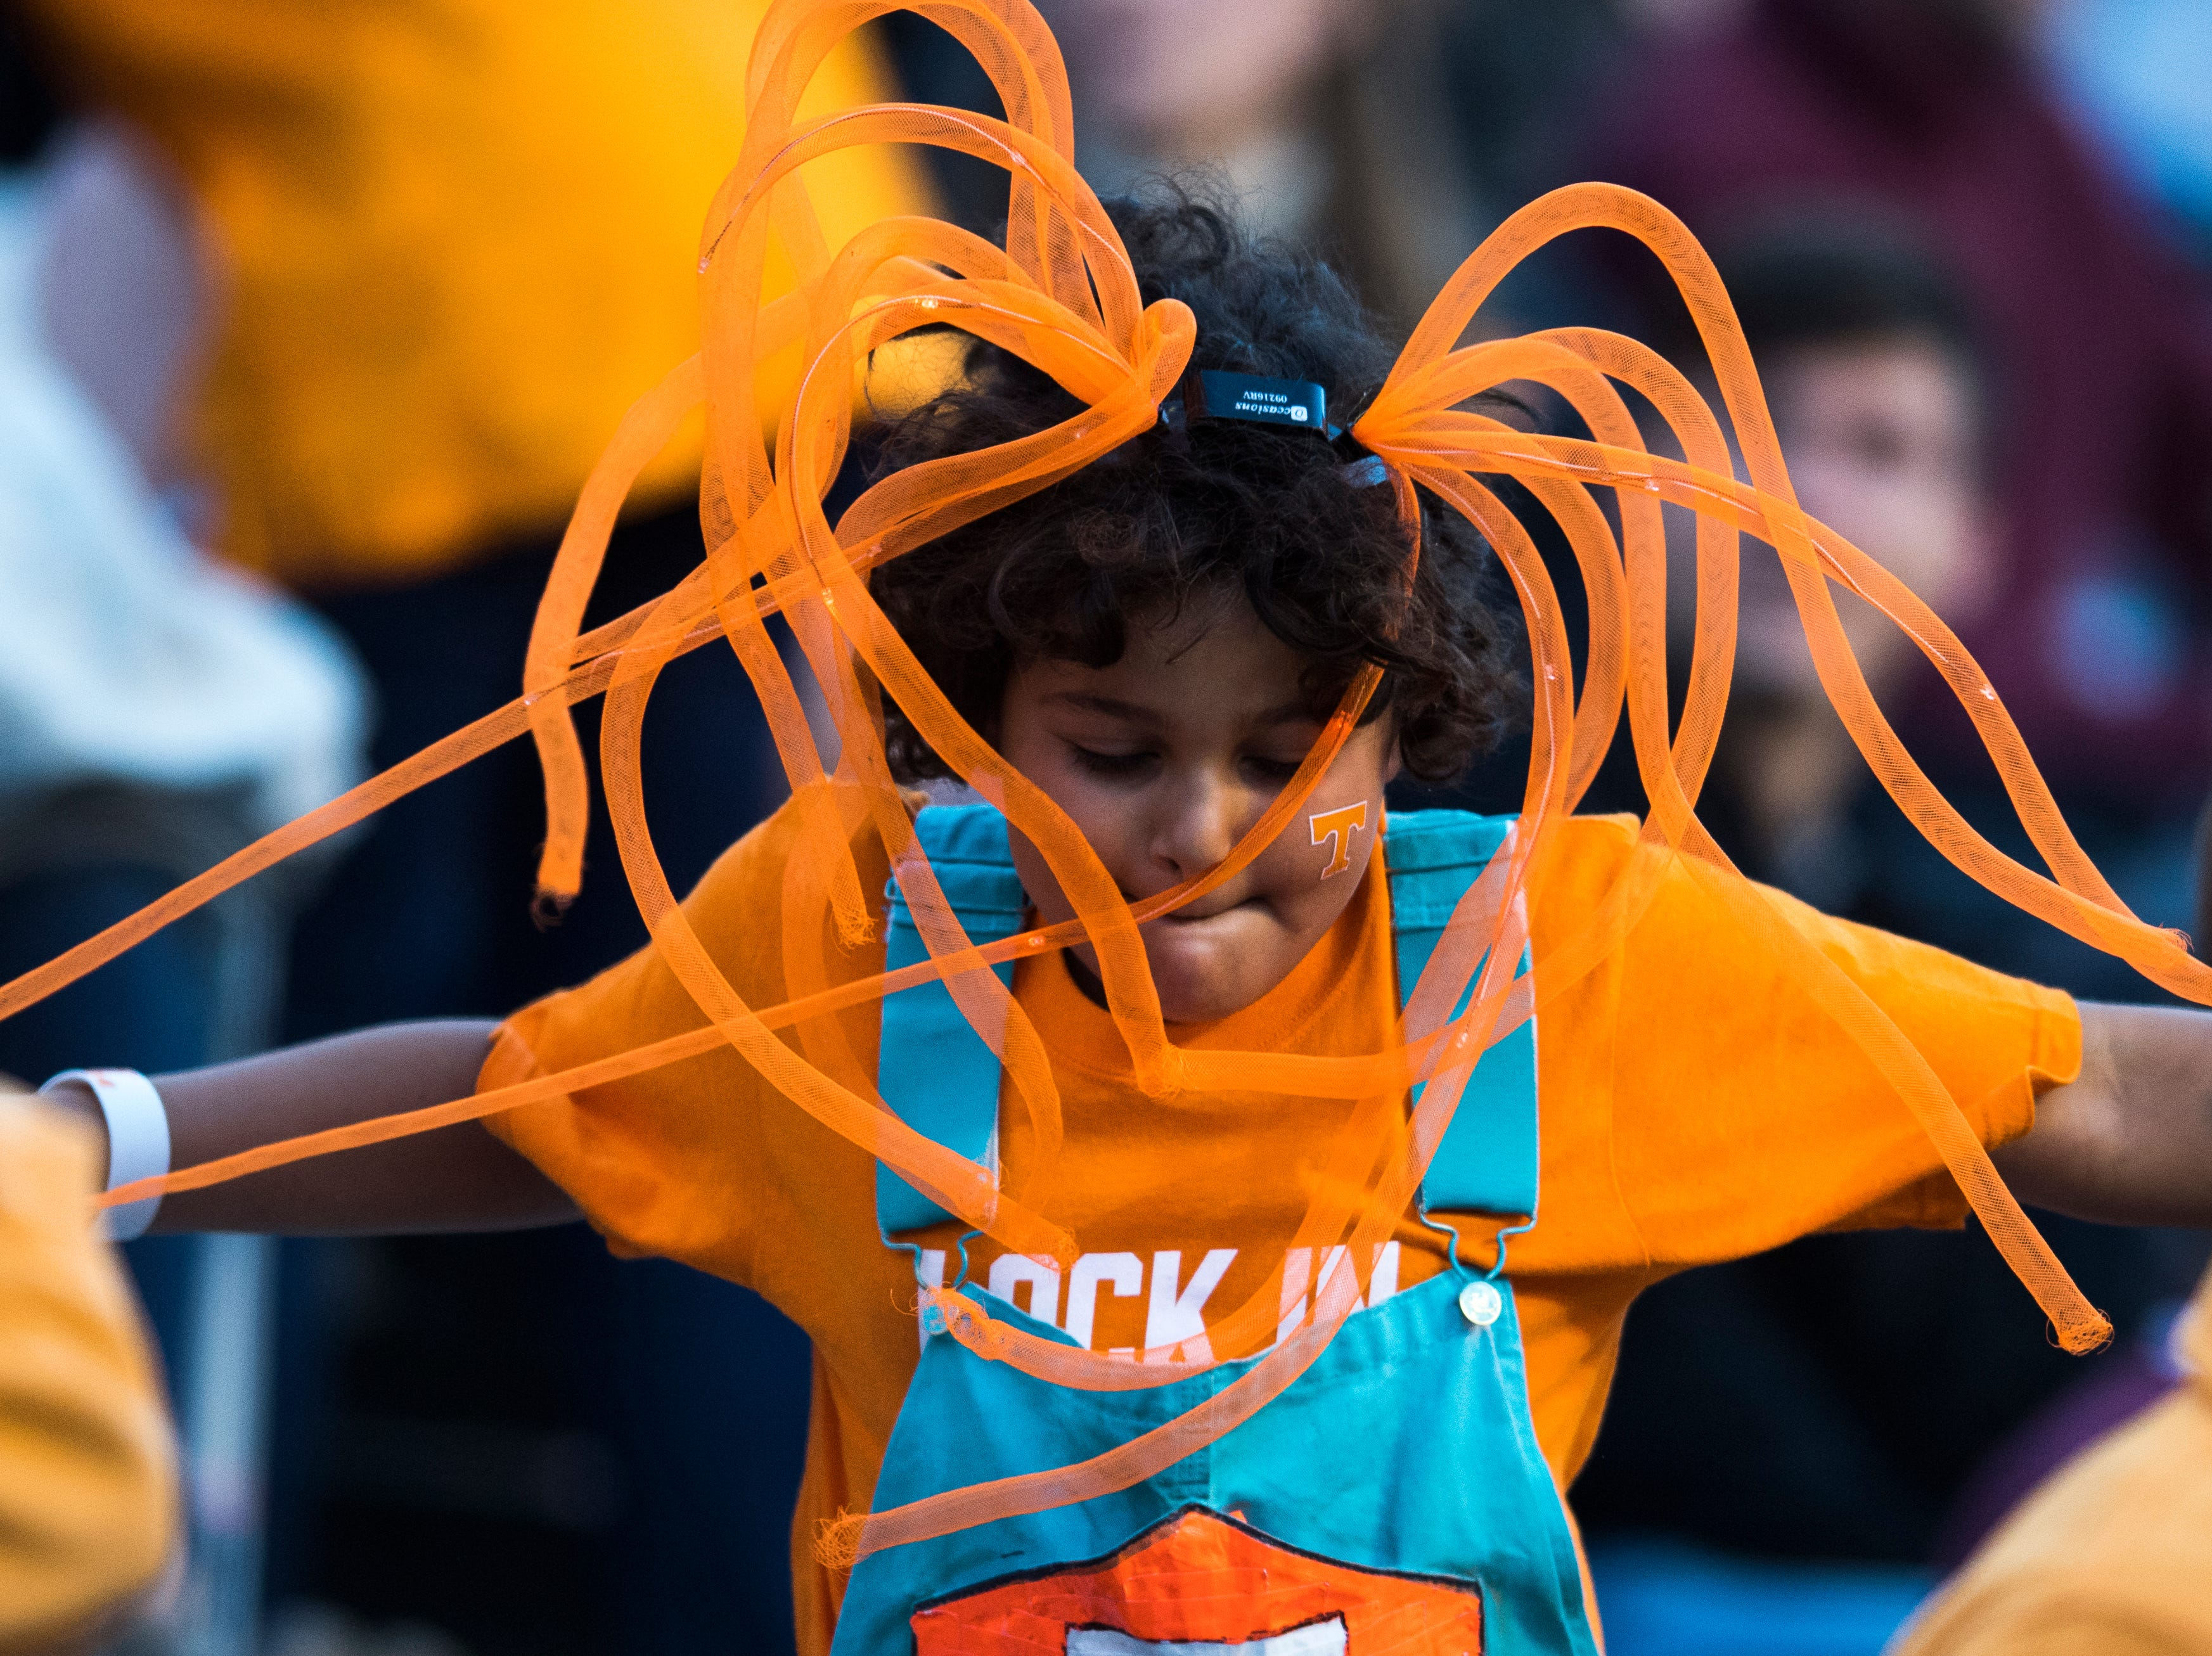 A young Tennessee fan dances in the stands during a game between Tennessee and Alabama at Neyland Stadium in Knoxville, Tennessee on Saturday, October 20, 2018.